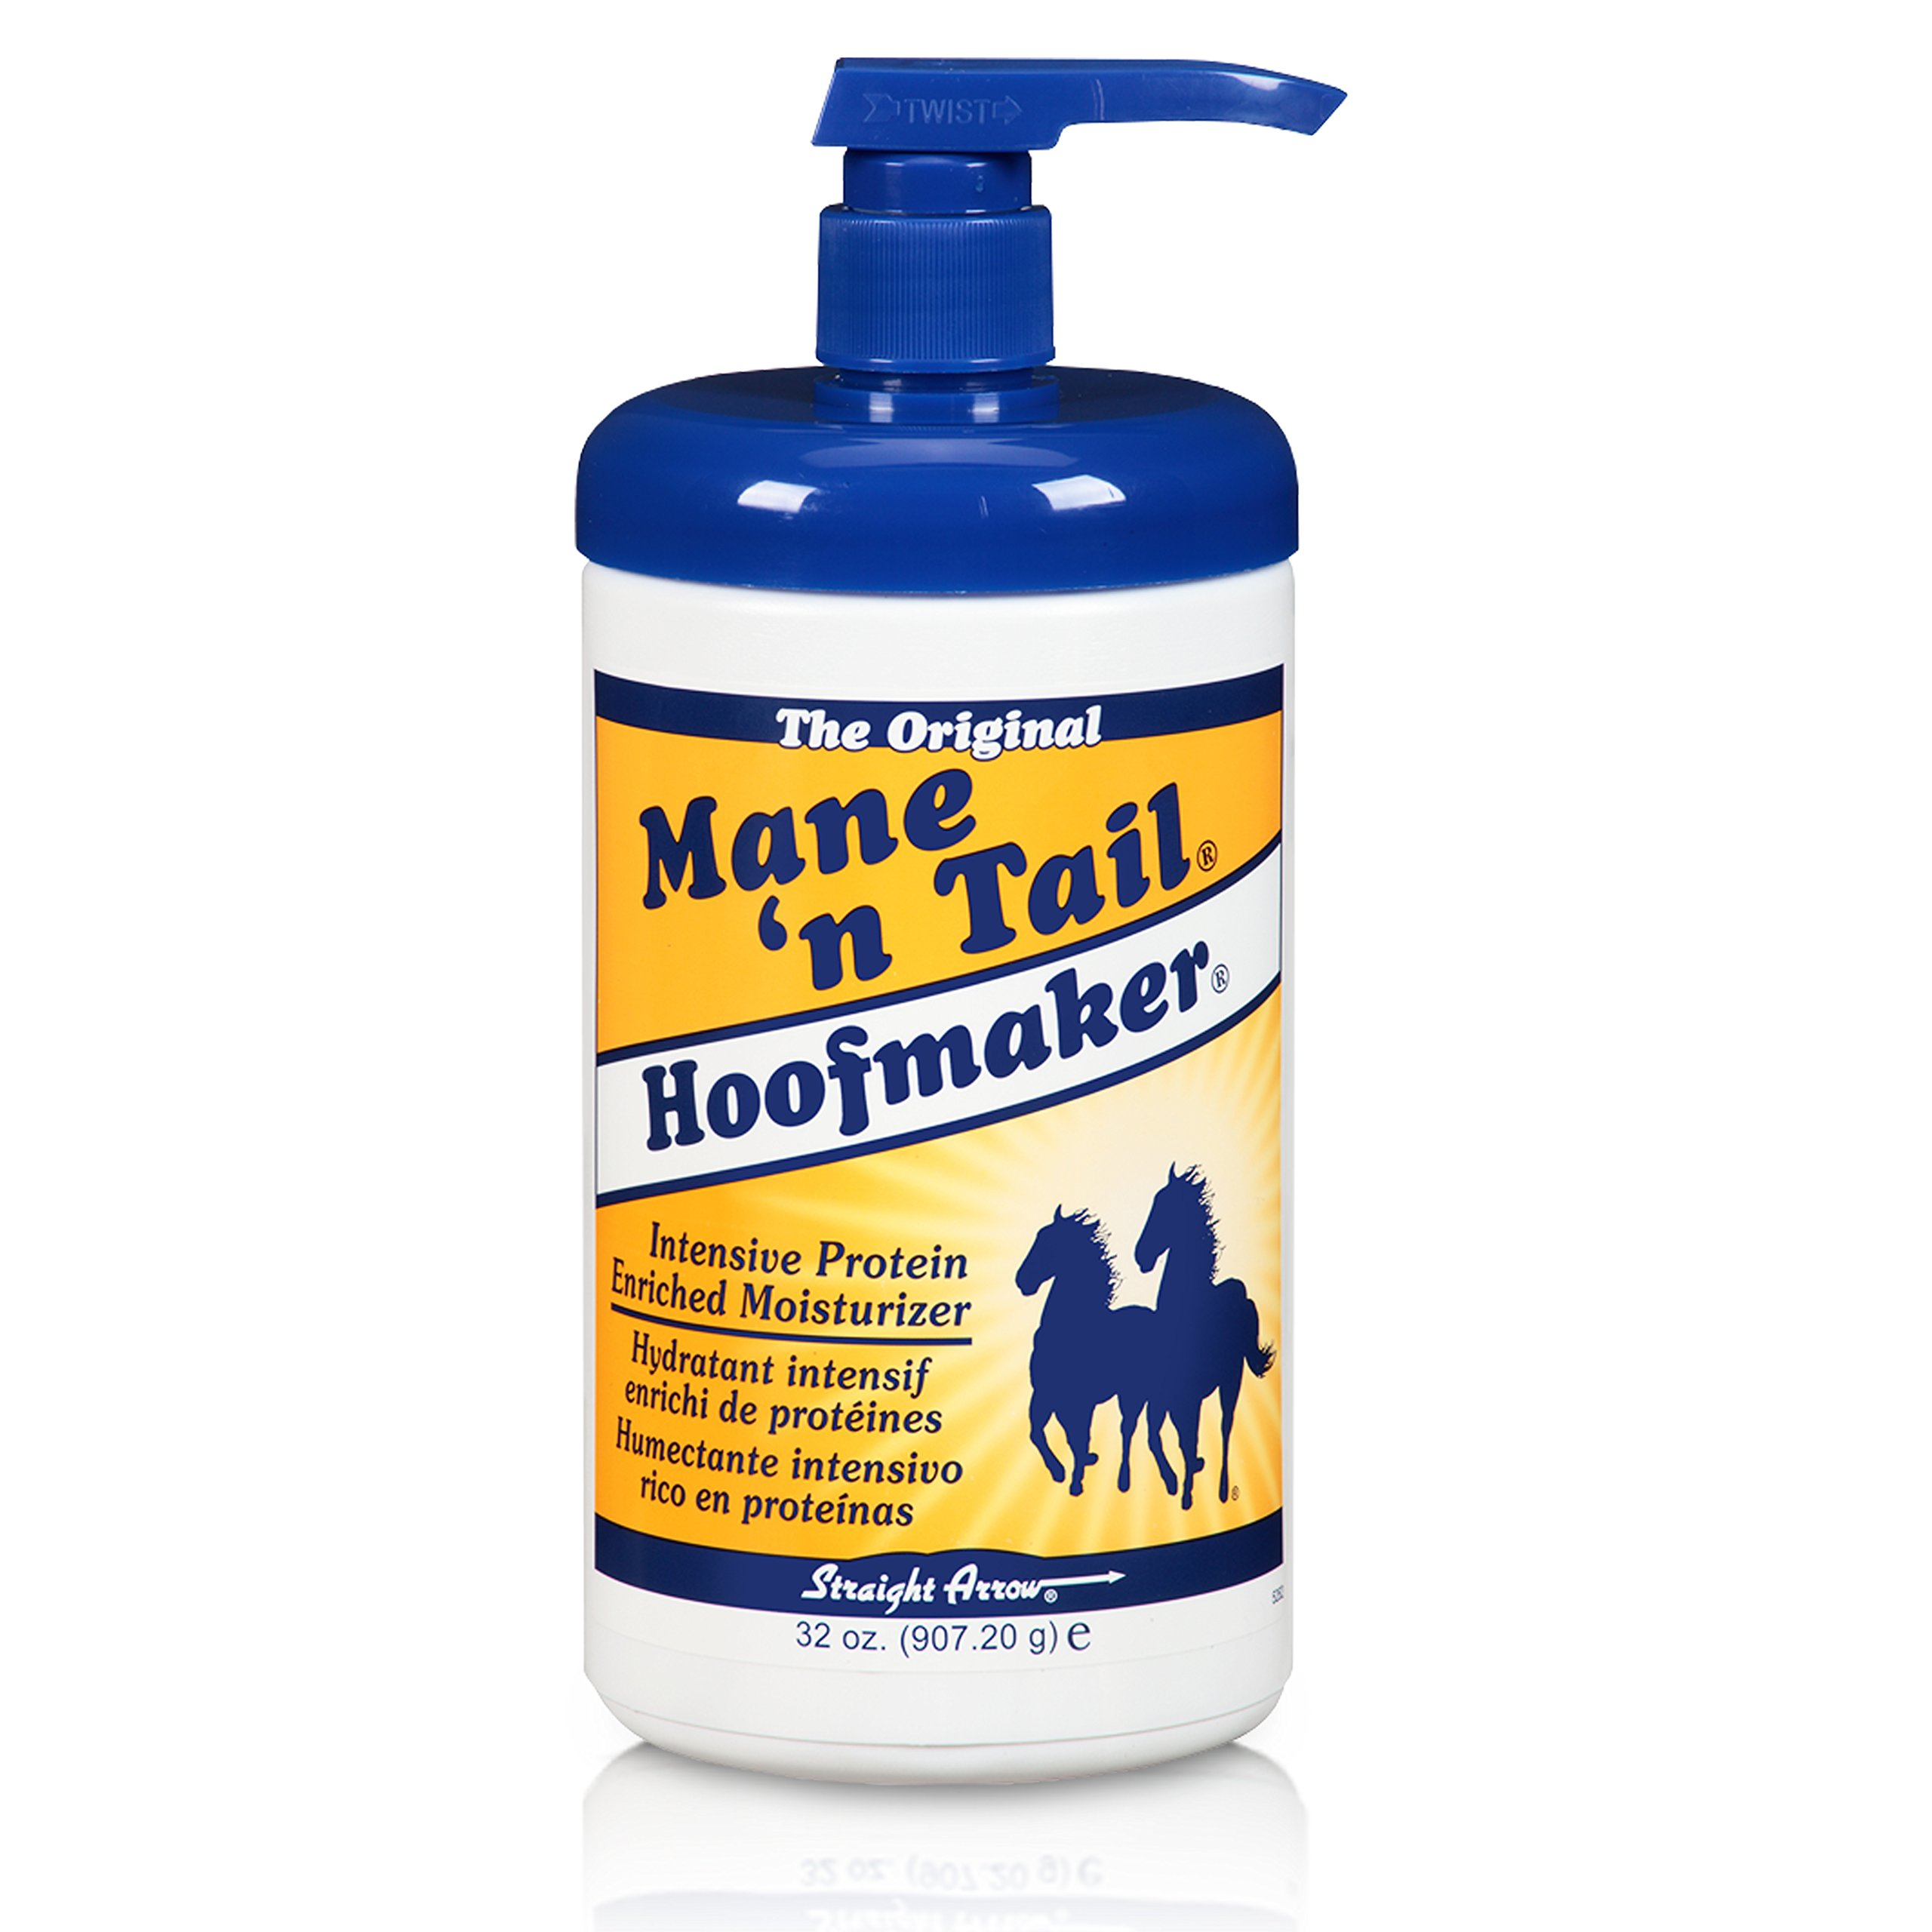 Mane 'n Tail Hoofmaker Hand & Nail Therapy Lotion 32 Ounce with Pump by Mane 'n Tail